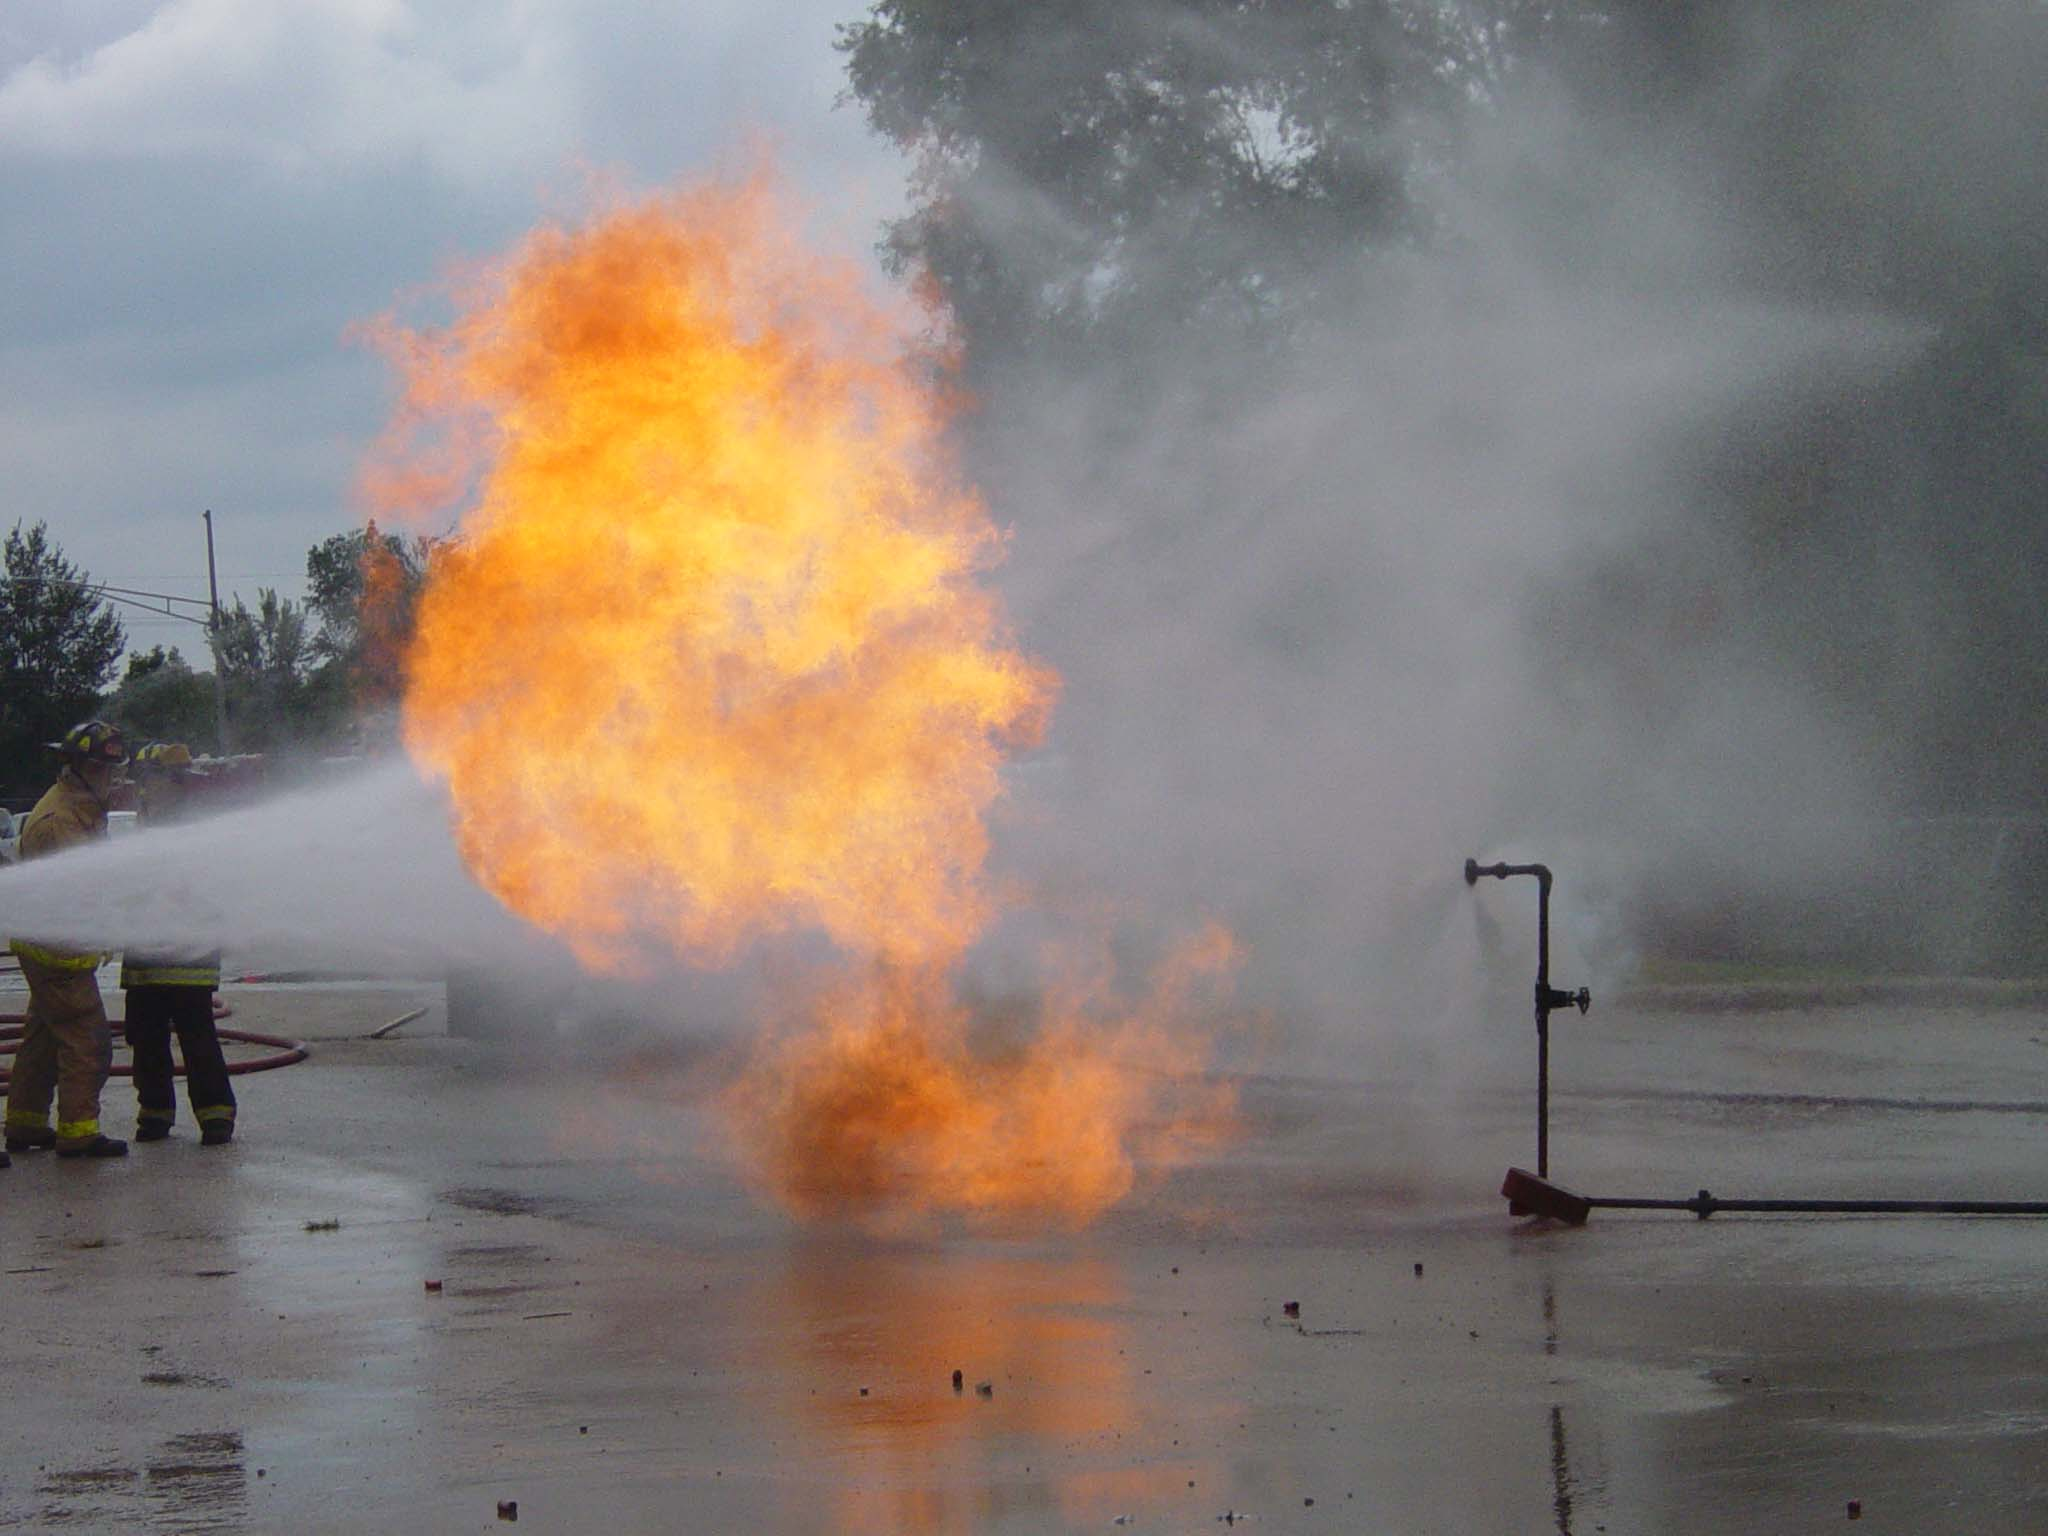 Fire crews attack a propane fire at a practical training drill taught by the Illinois Fire Service I